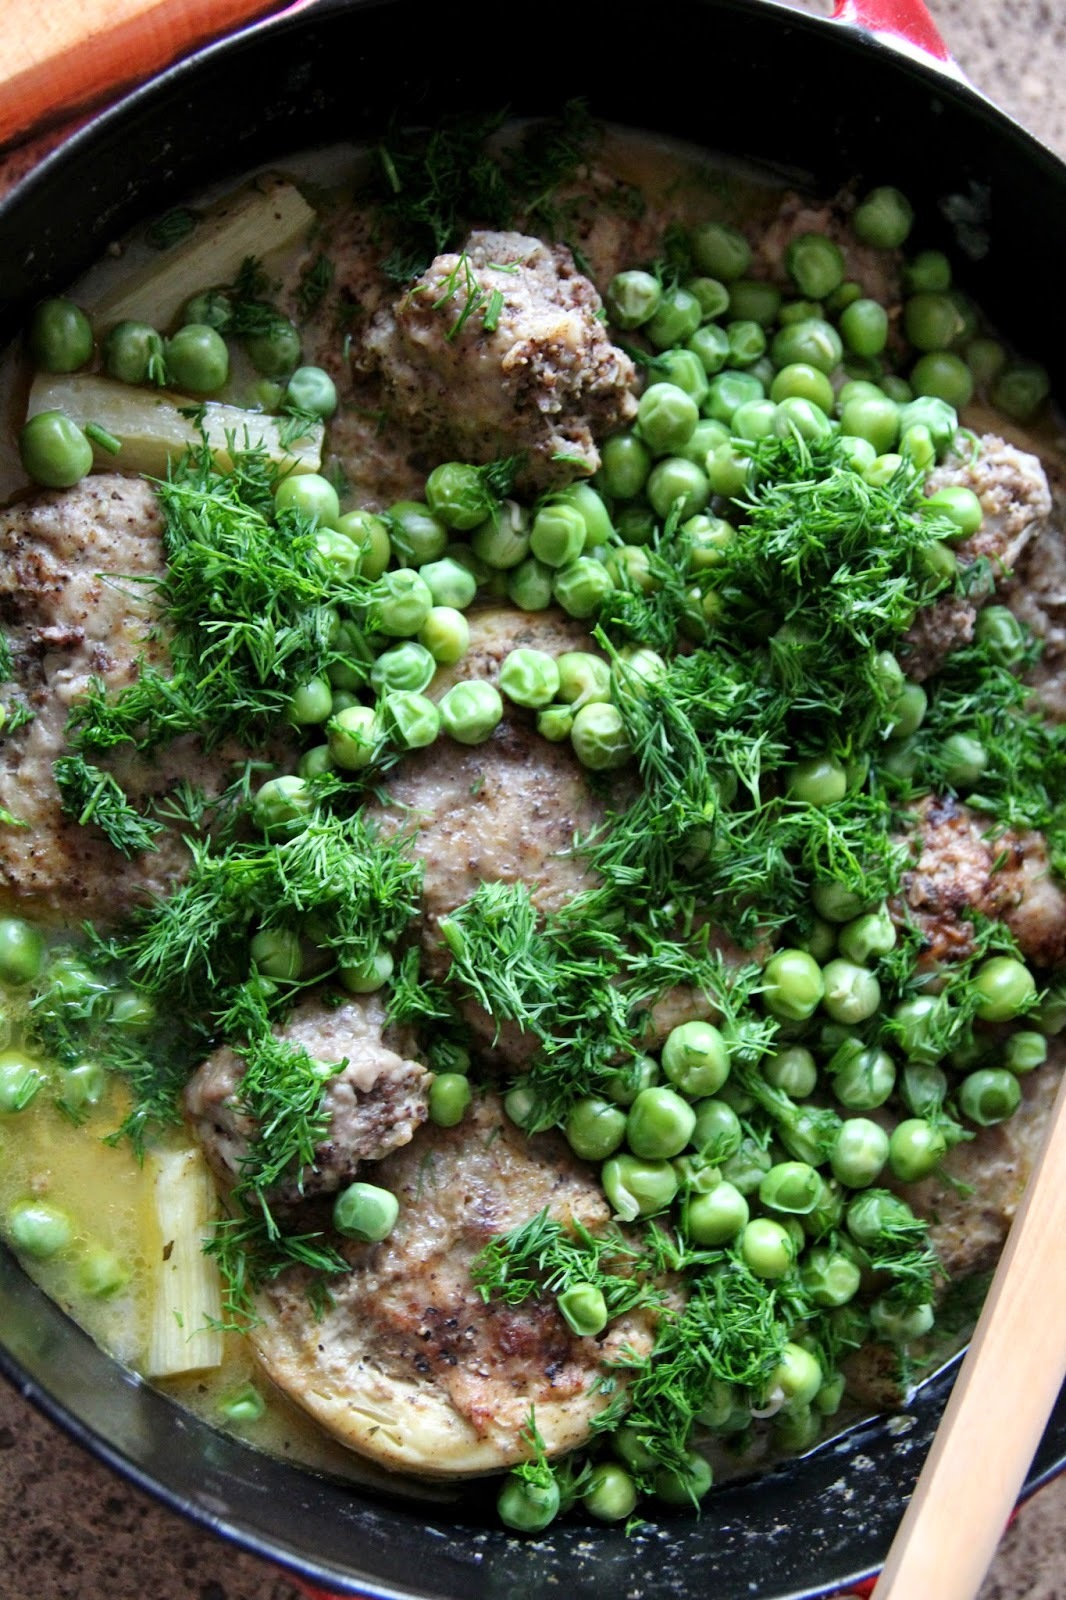 Stuffed Artichokes with Peas & Dill: another Ottolenghi!